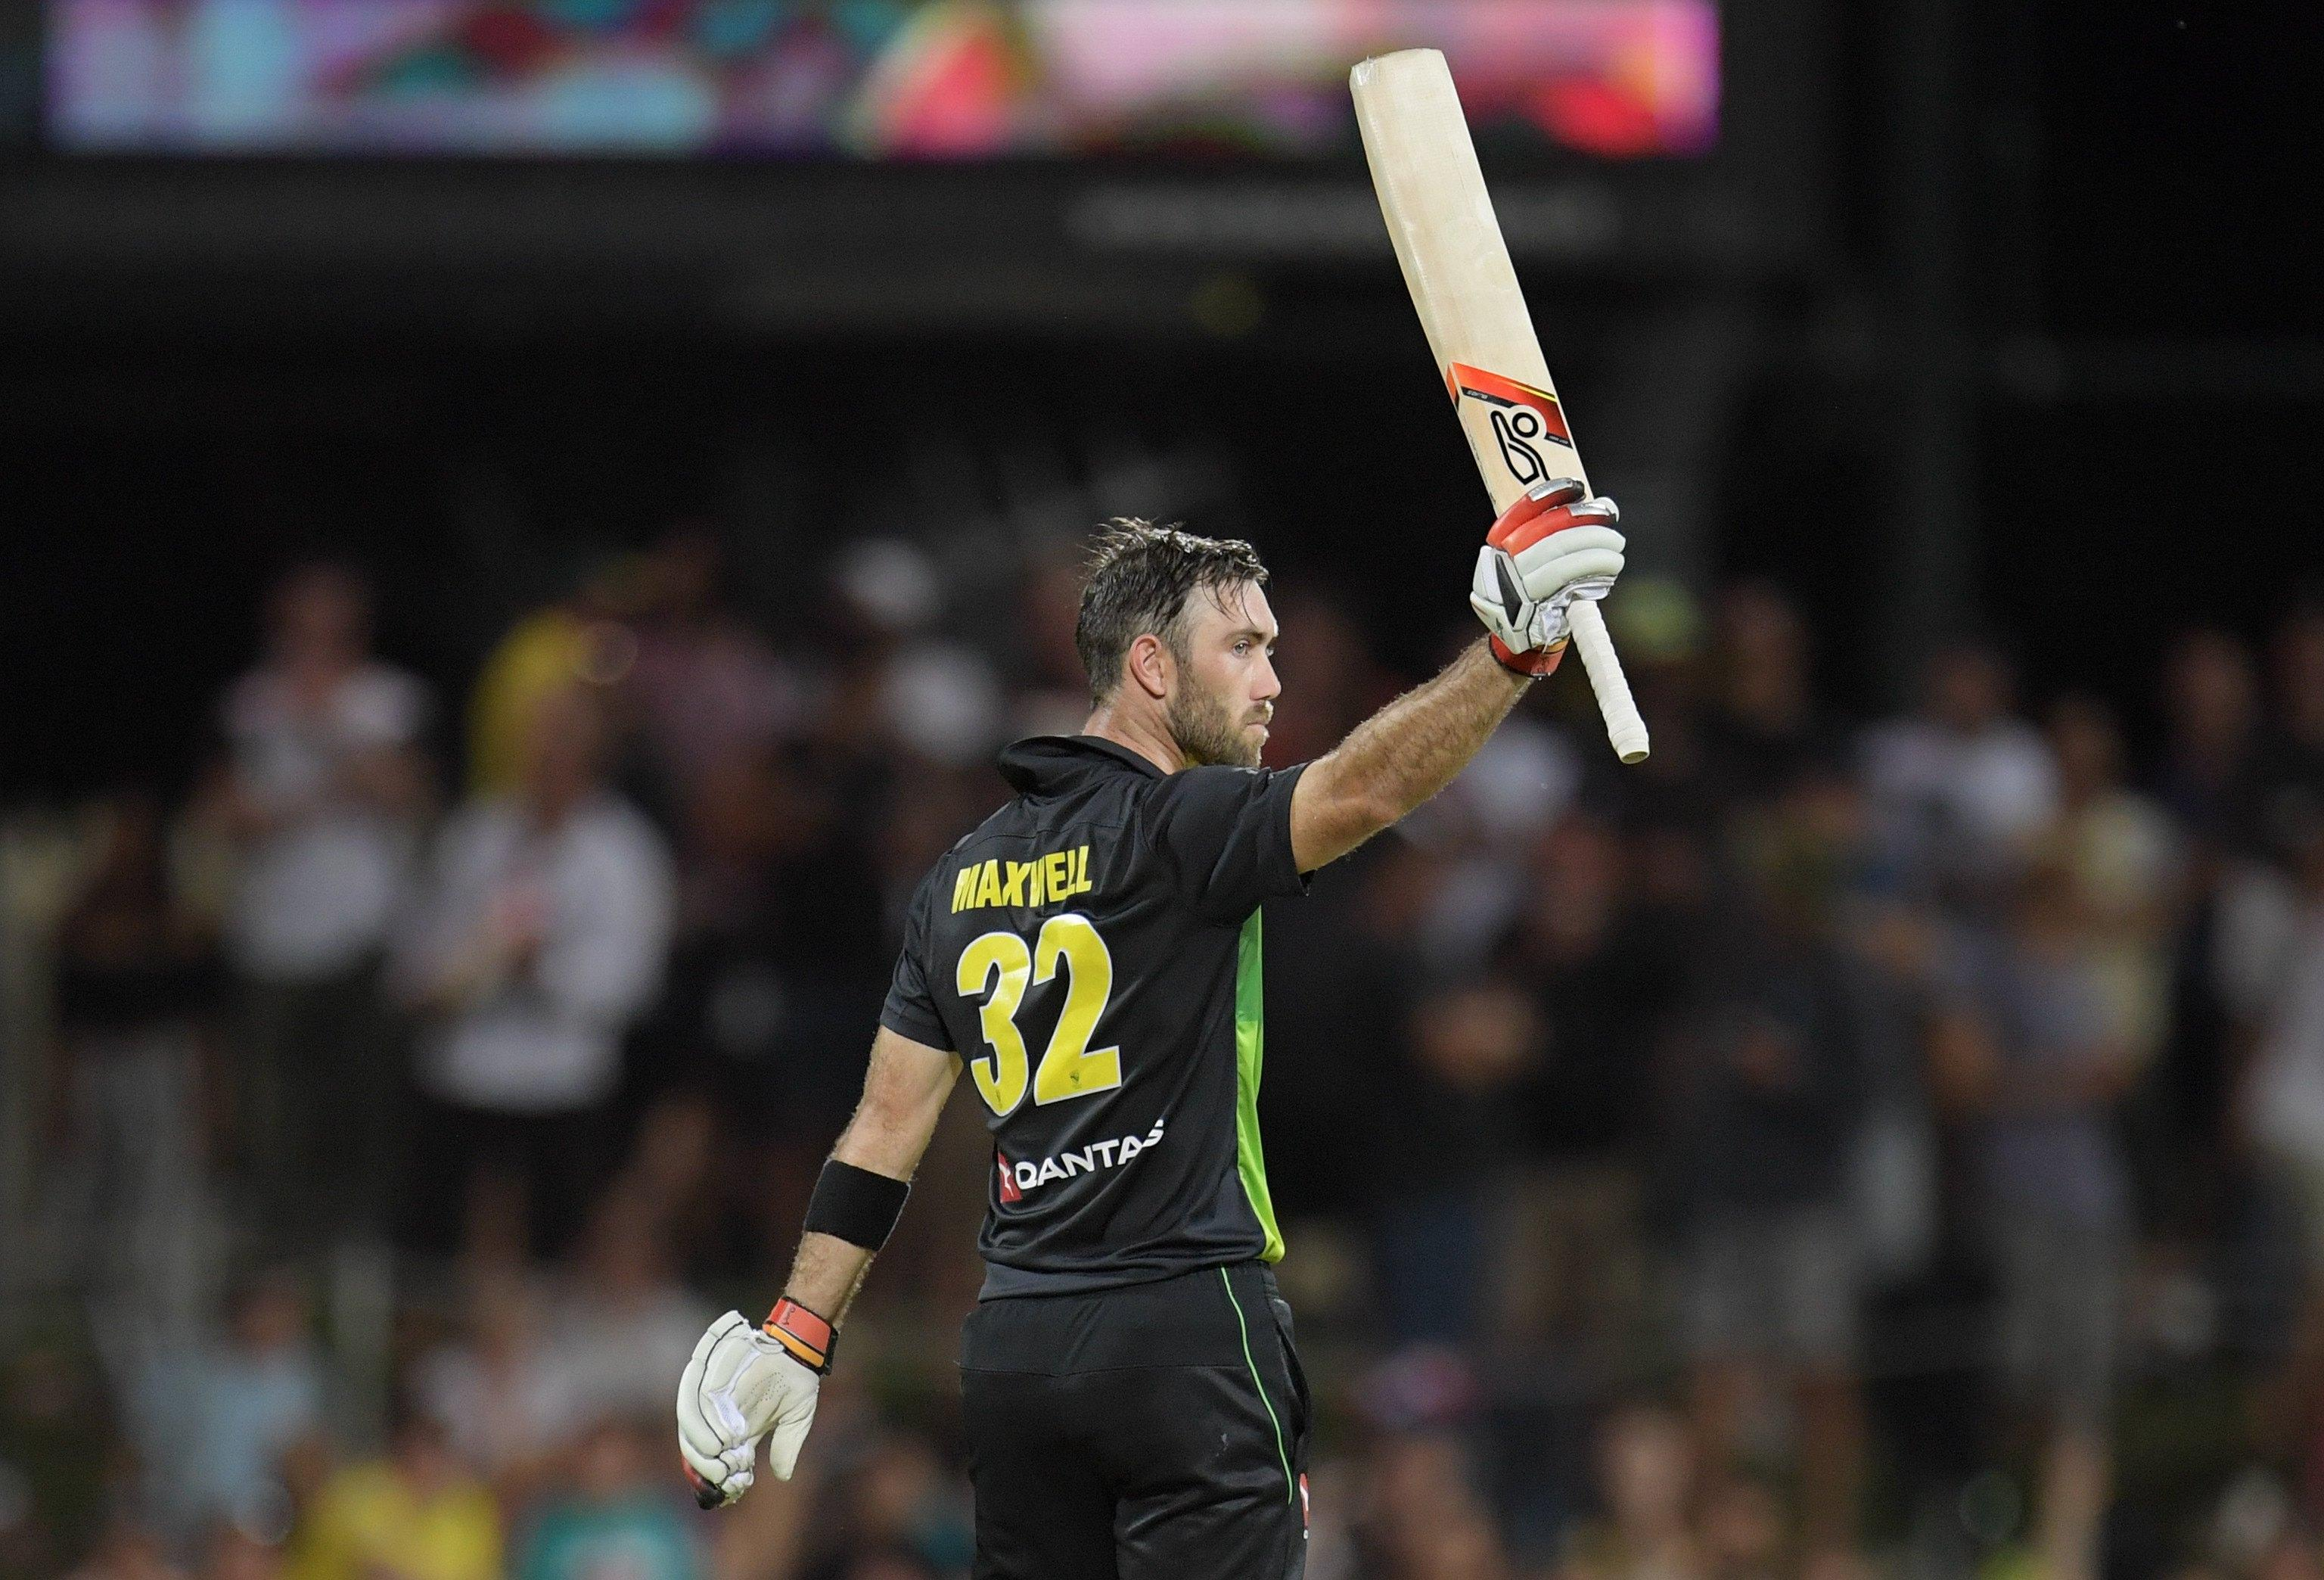 Glenn Maxwell fired Australia to victory over England in Hobart